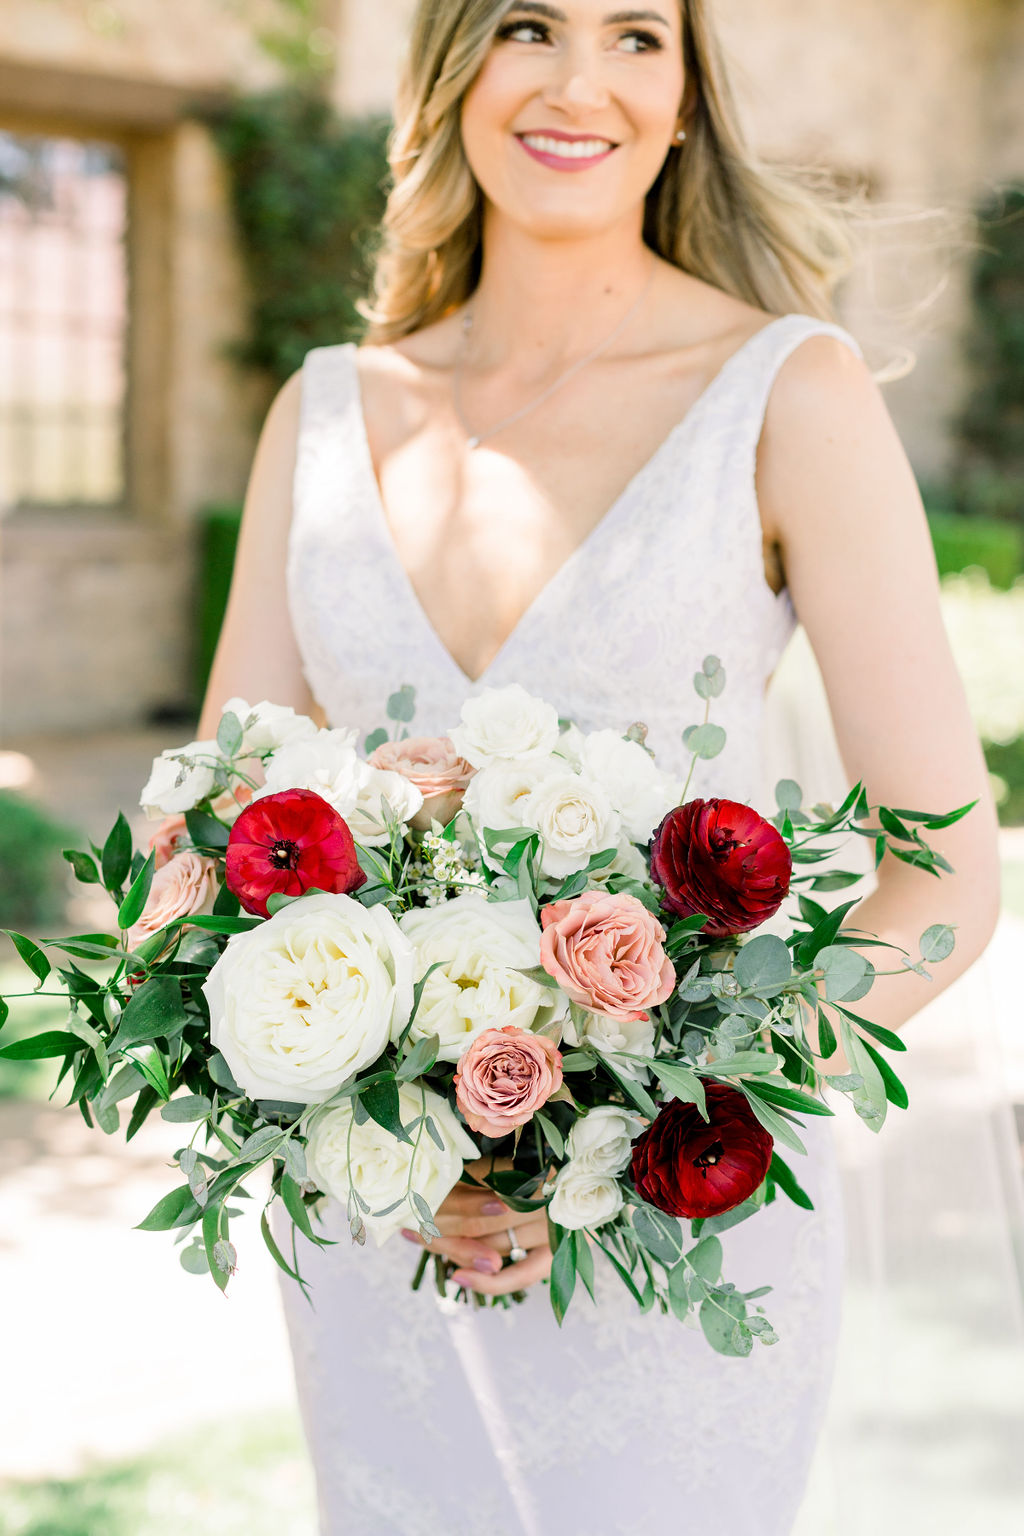 Superstition Mountain Destination Wedding - Arizona Wedding Florist - Phoenix, Scottsdale, Sedona - Bridal Bouquet in white, dusty blush, and burgundy